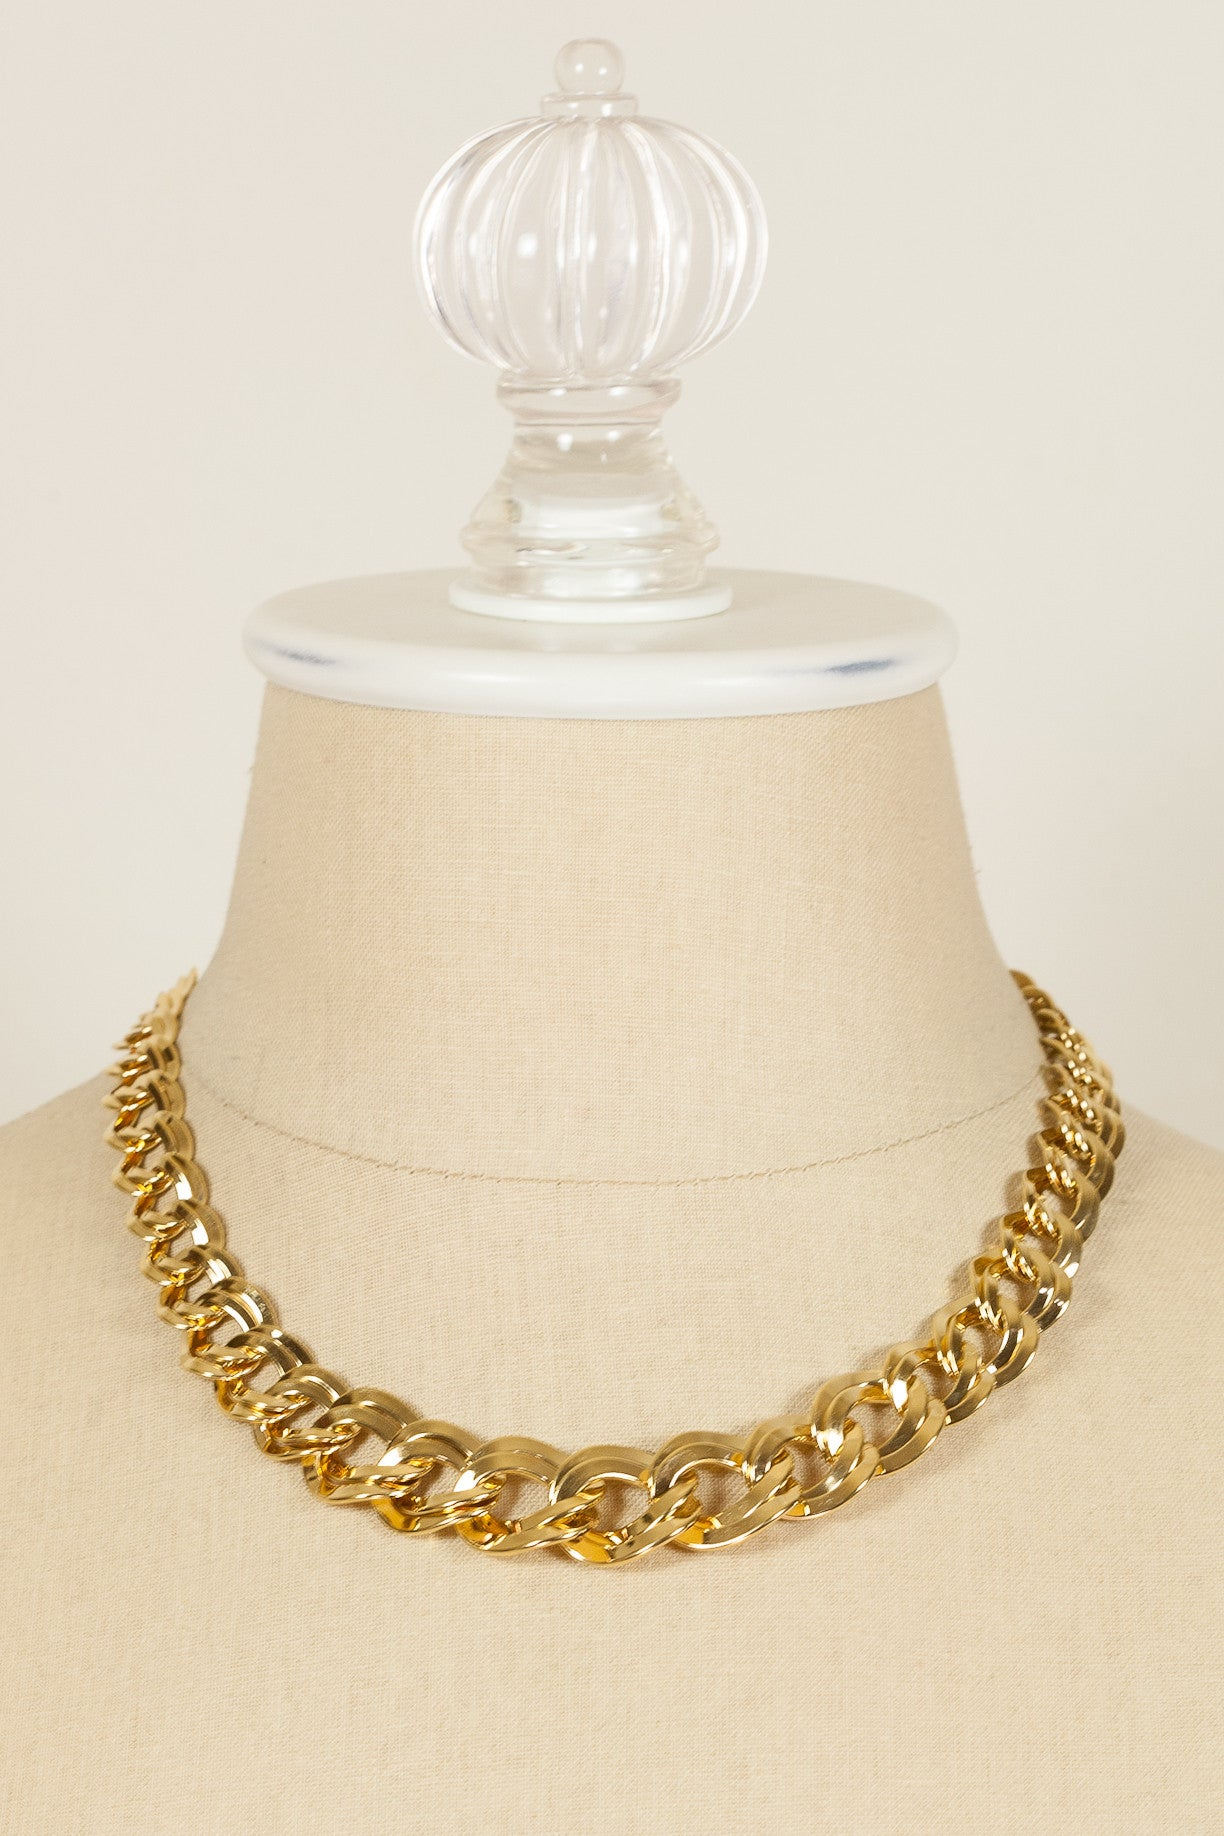 80's__Monet__Double Link Chunky Chain Necklace